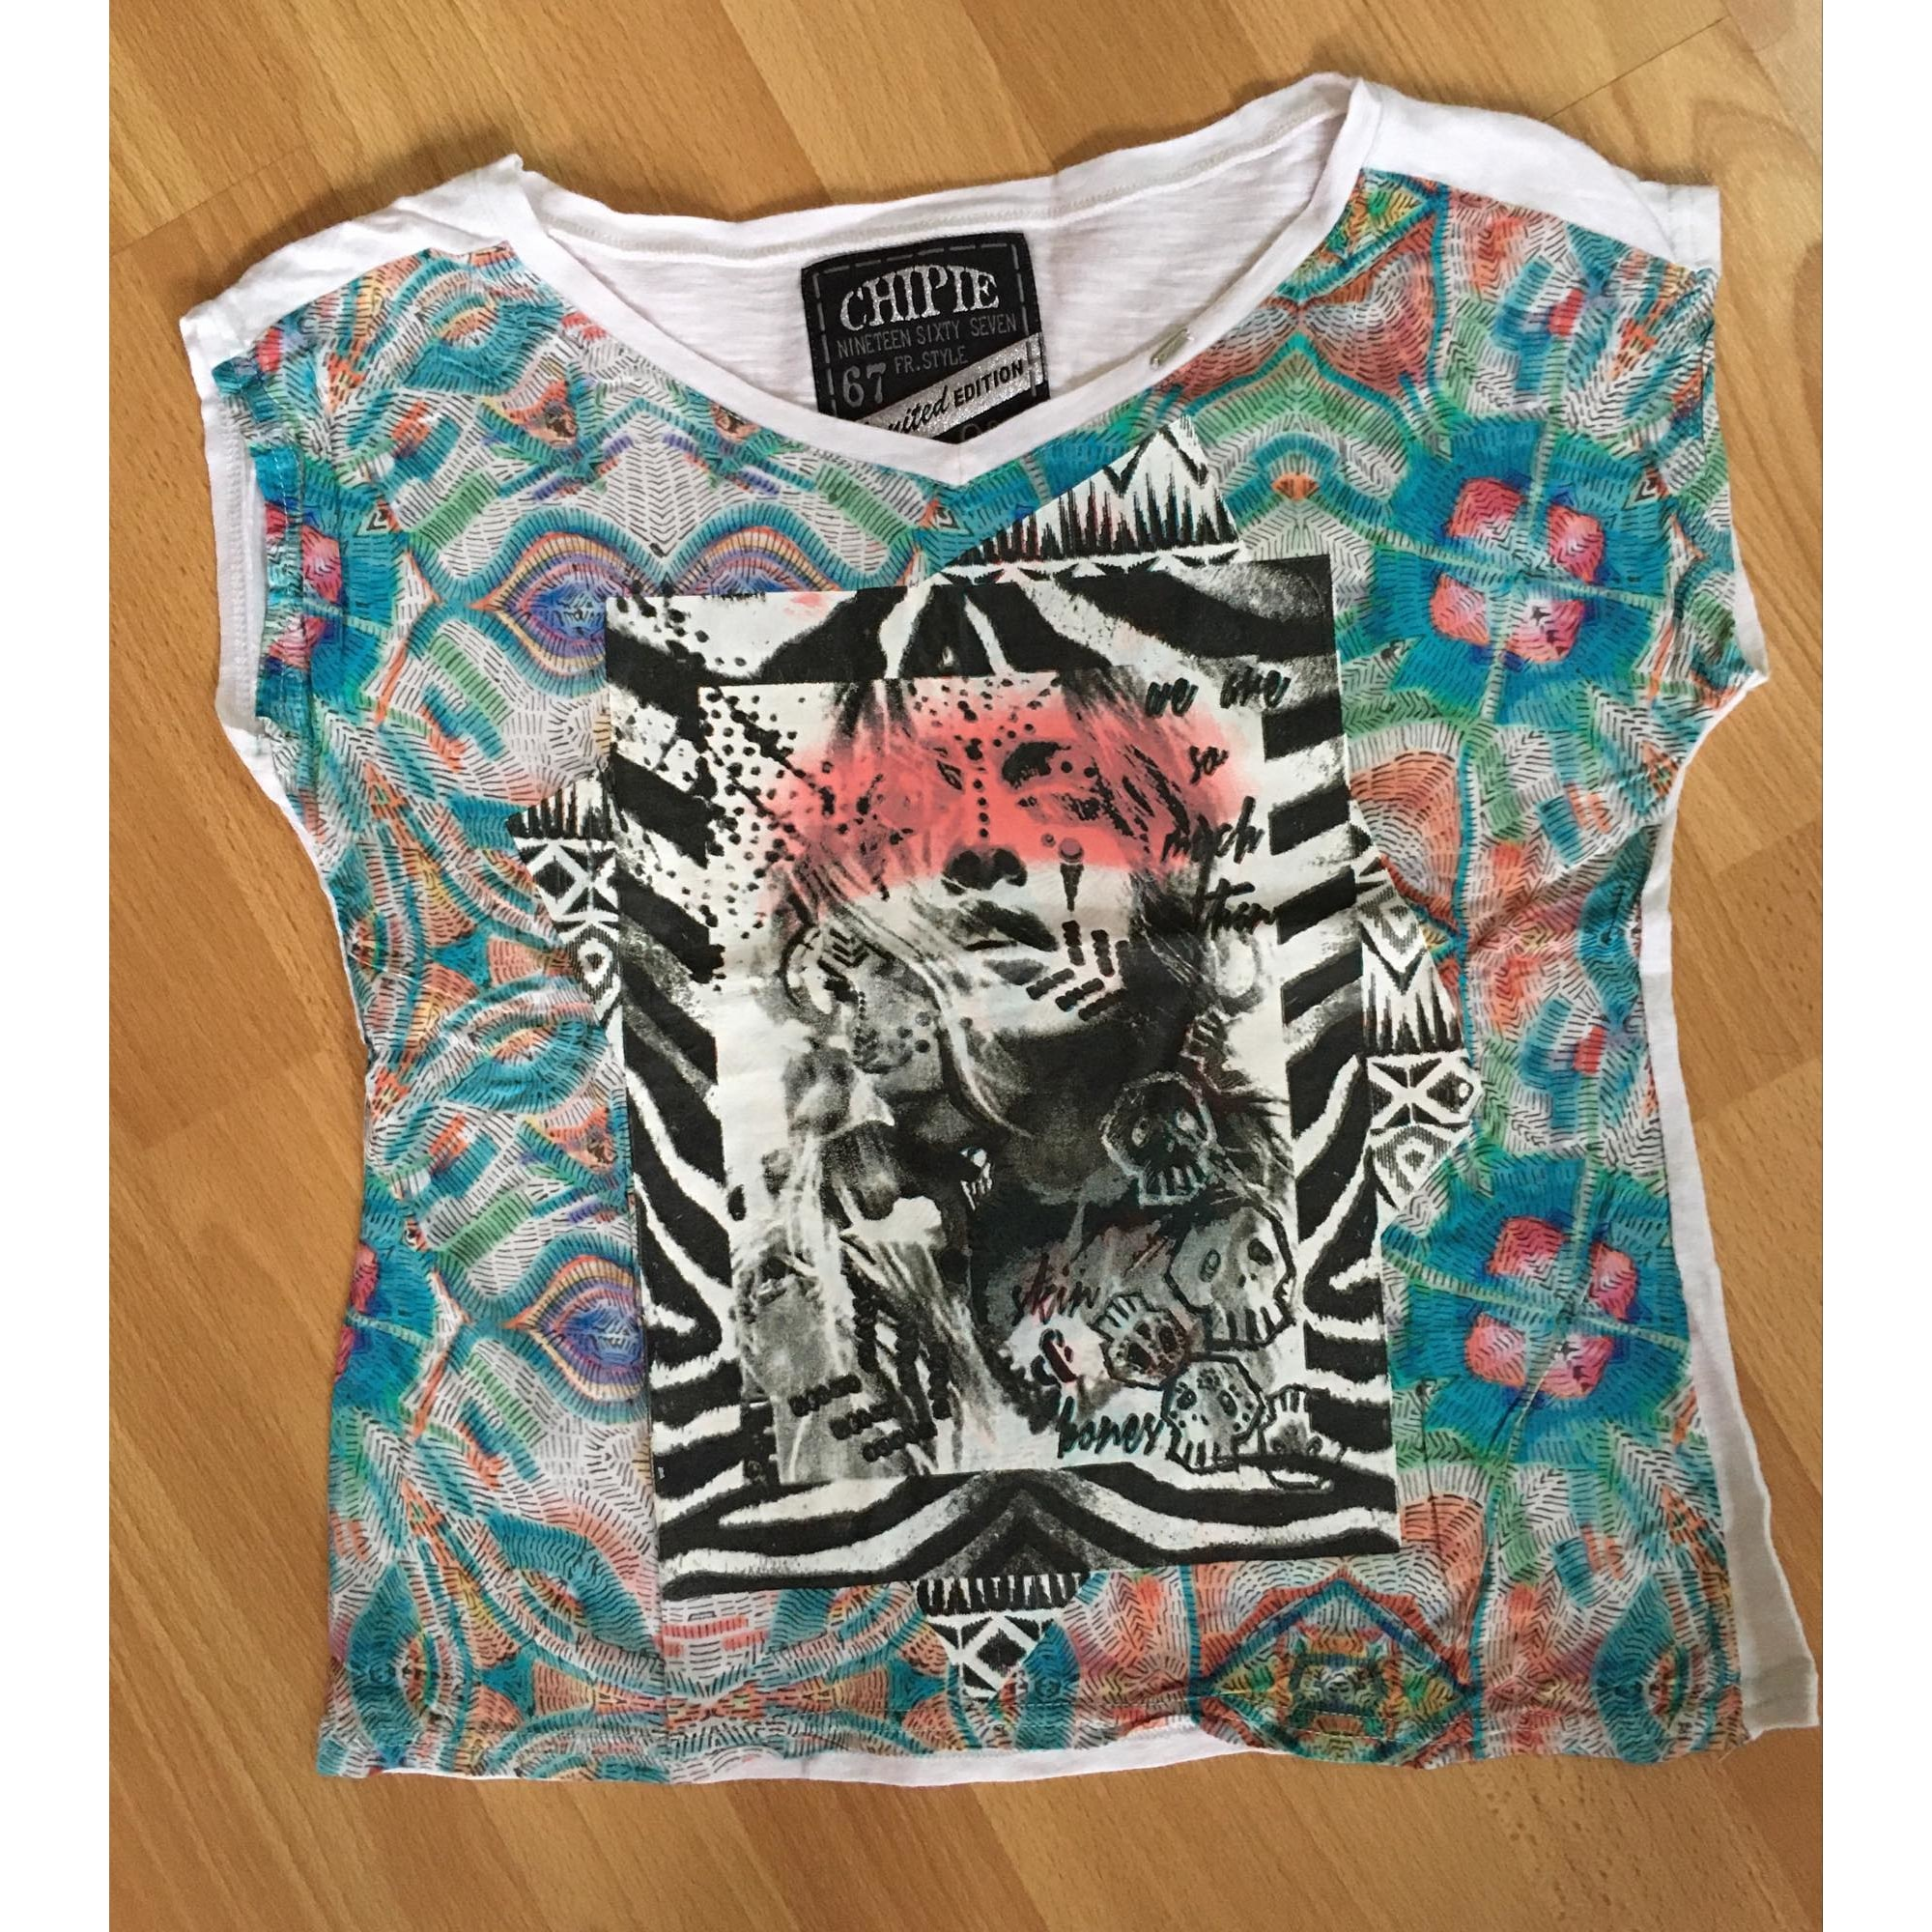 Top, Tee-shirt CHIPIE Multicouleur